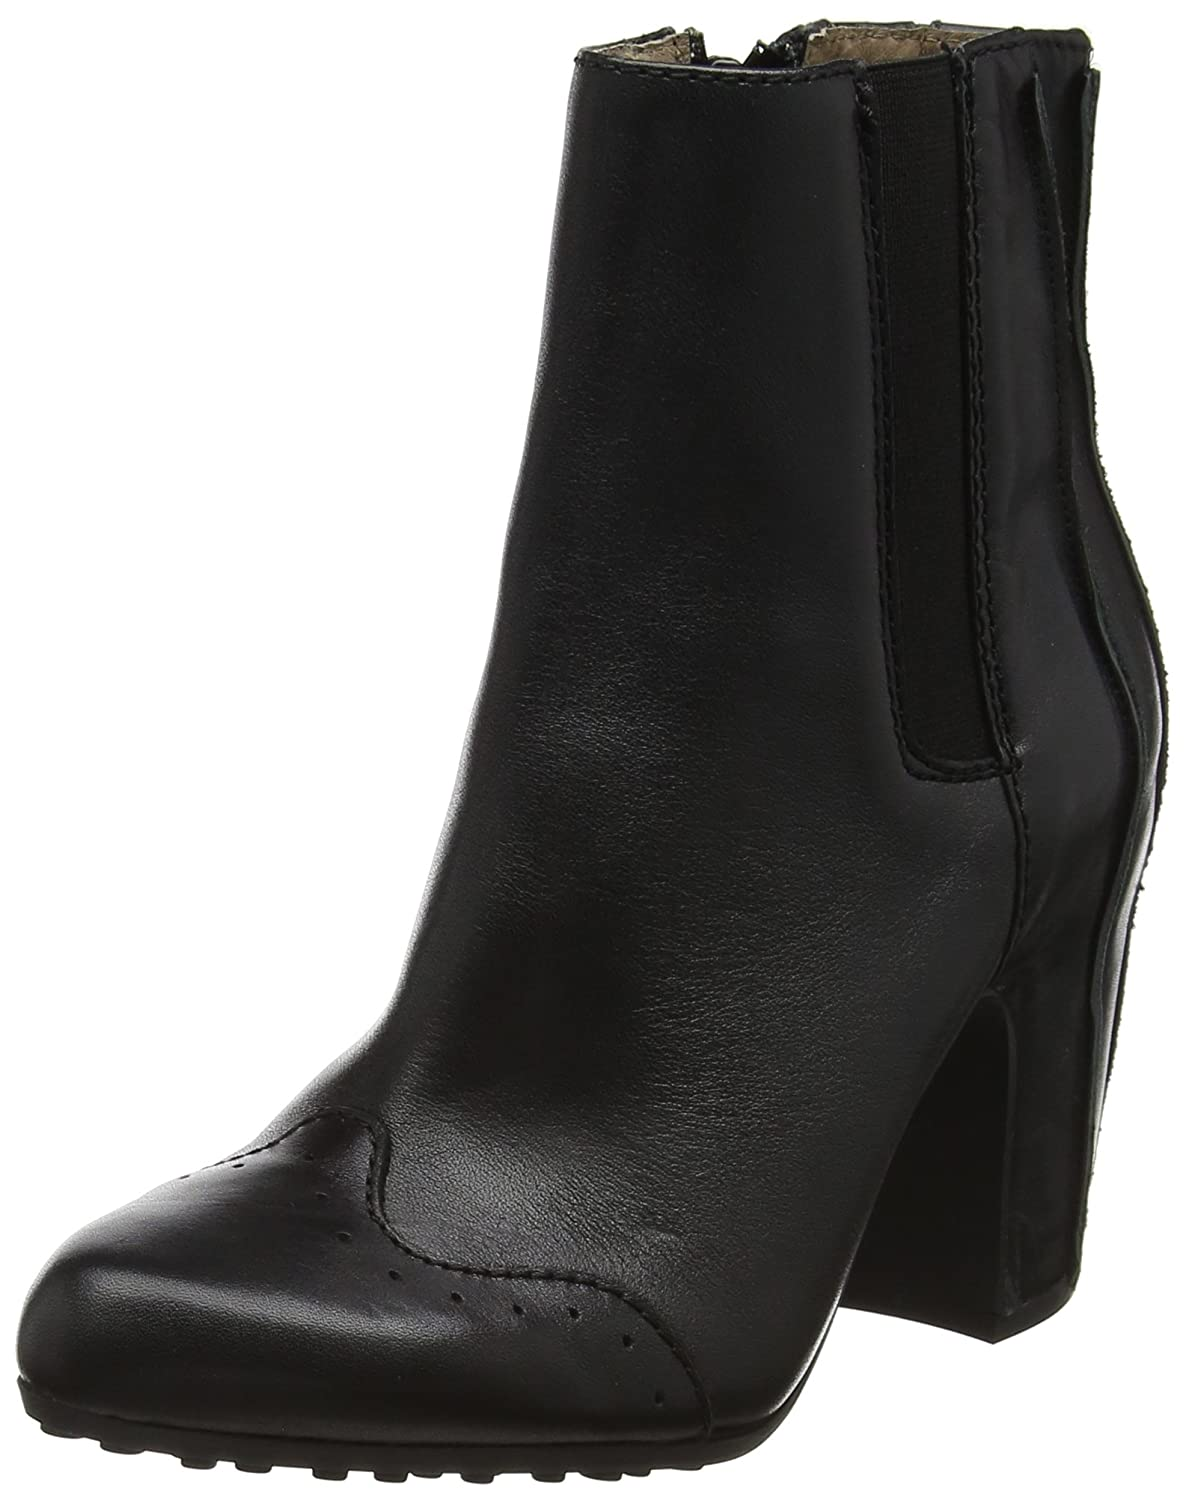 FLY London Women's Alar140fly Fashion Boot B06X9H953S 40 M EU (9-9.5 US)|Black Calhariz